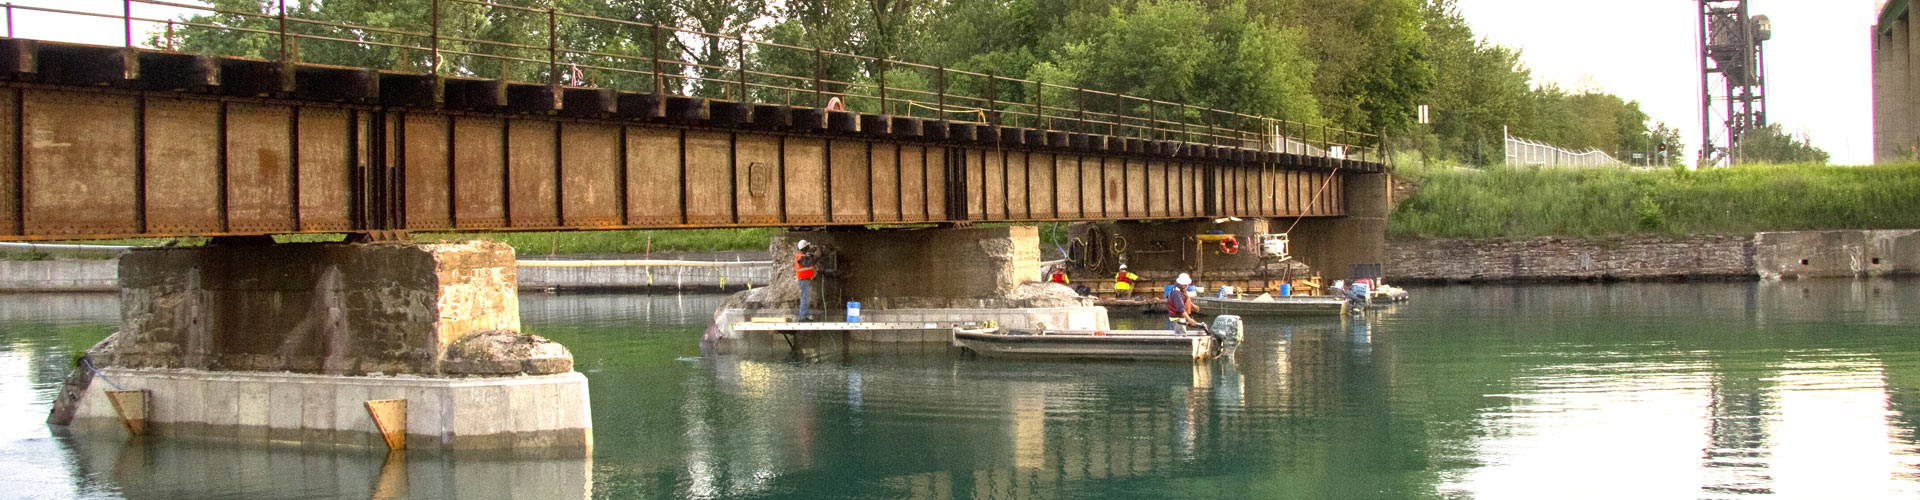 underwater construction, preplaced aggregate concrete, grouting, railroad bridge repairs, bridge repairs